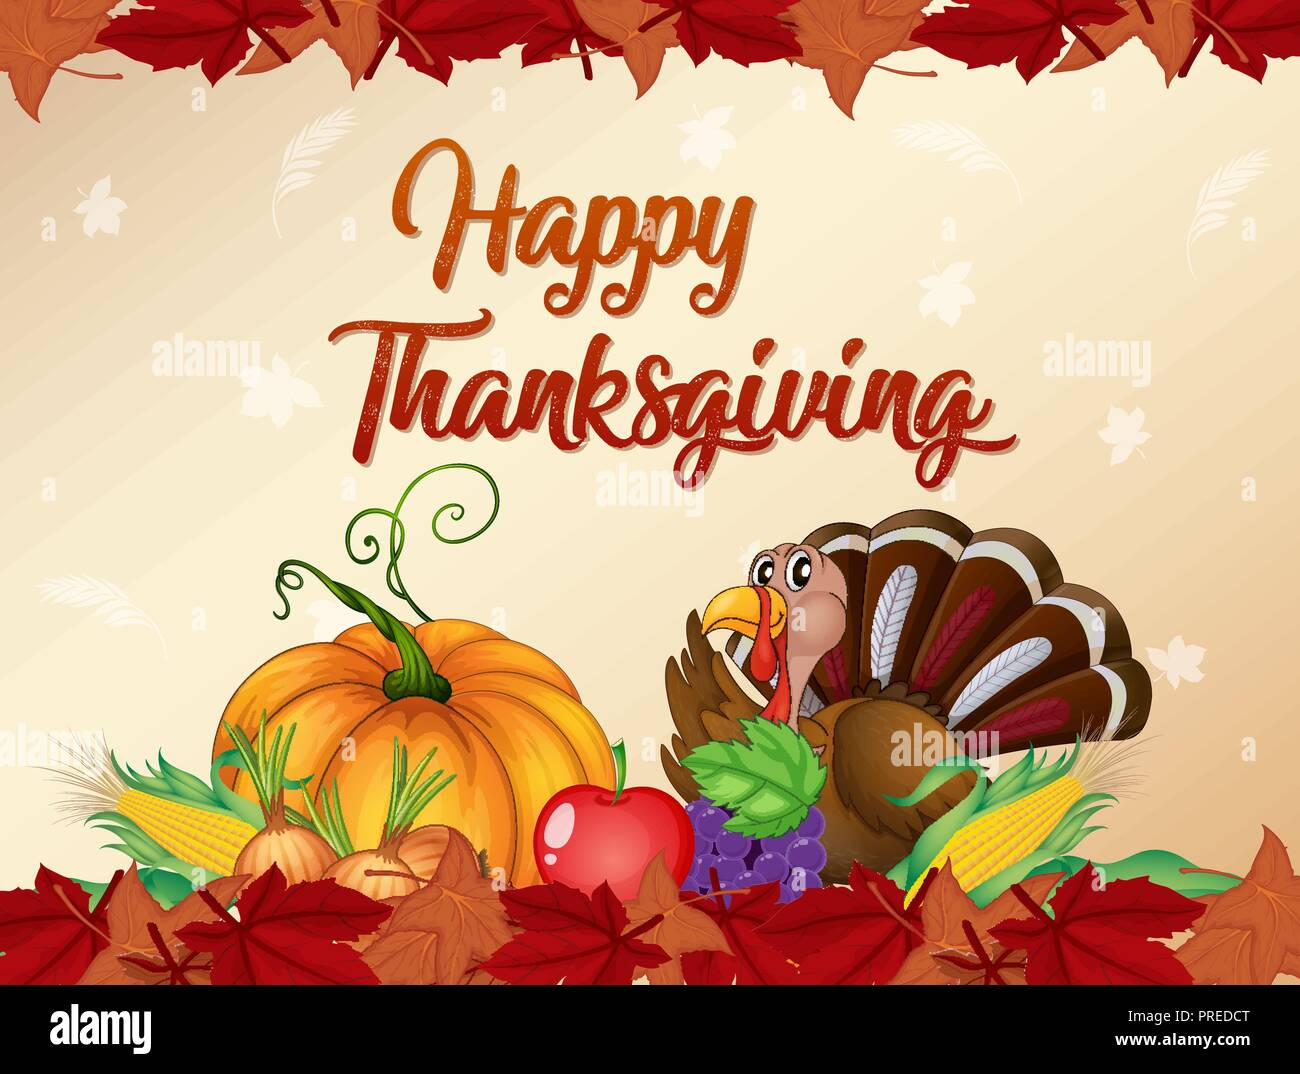 happy thanksgiving card template illustration stock vector art